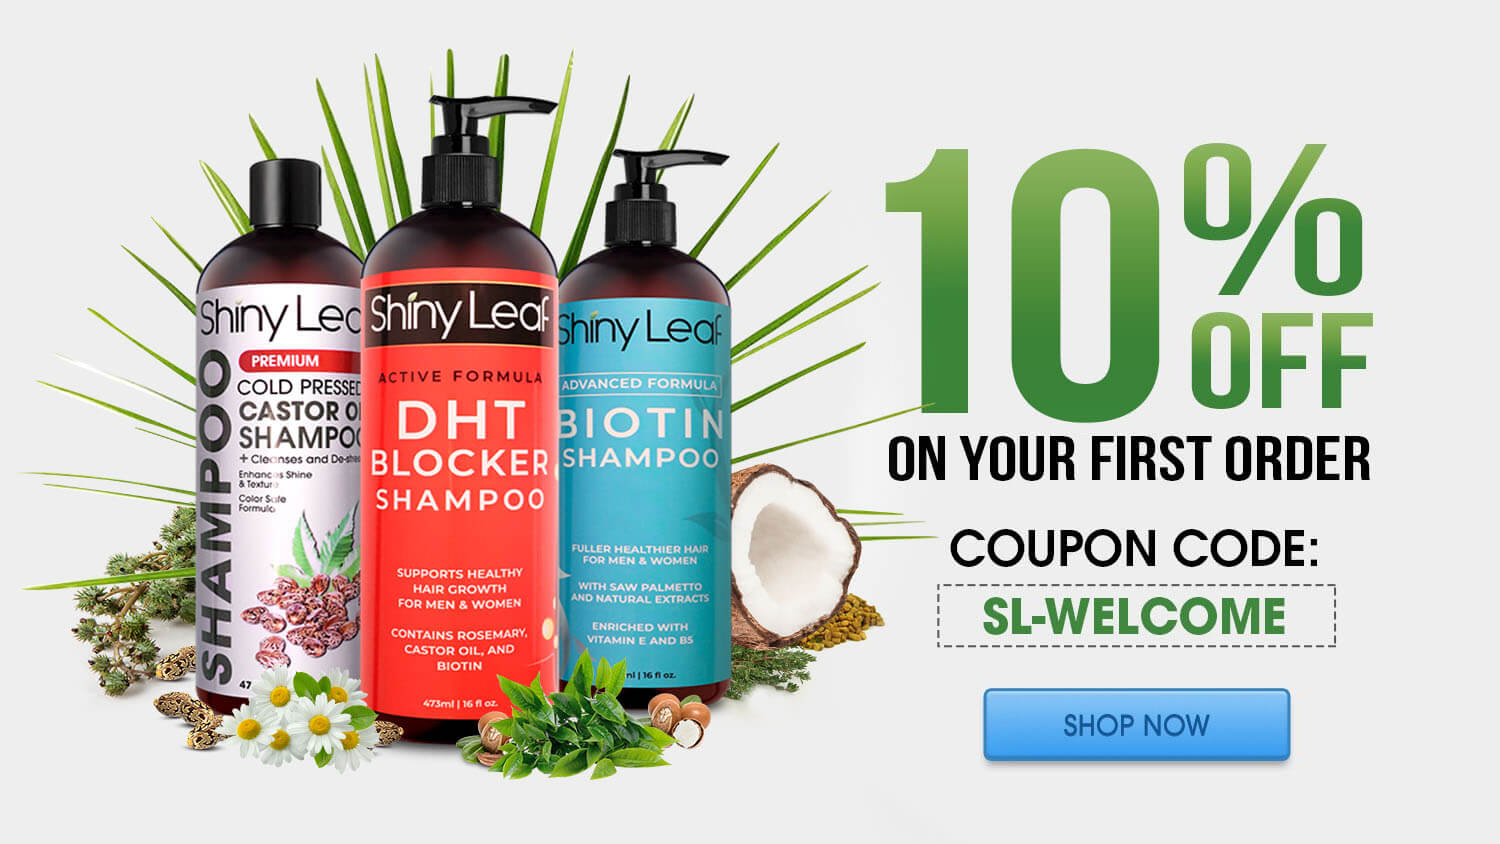 Shiny Leaf Welcome Gift: 10% OFF on your First Order